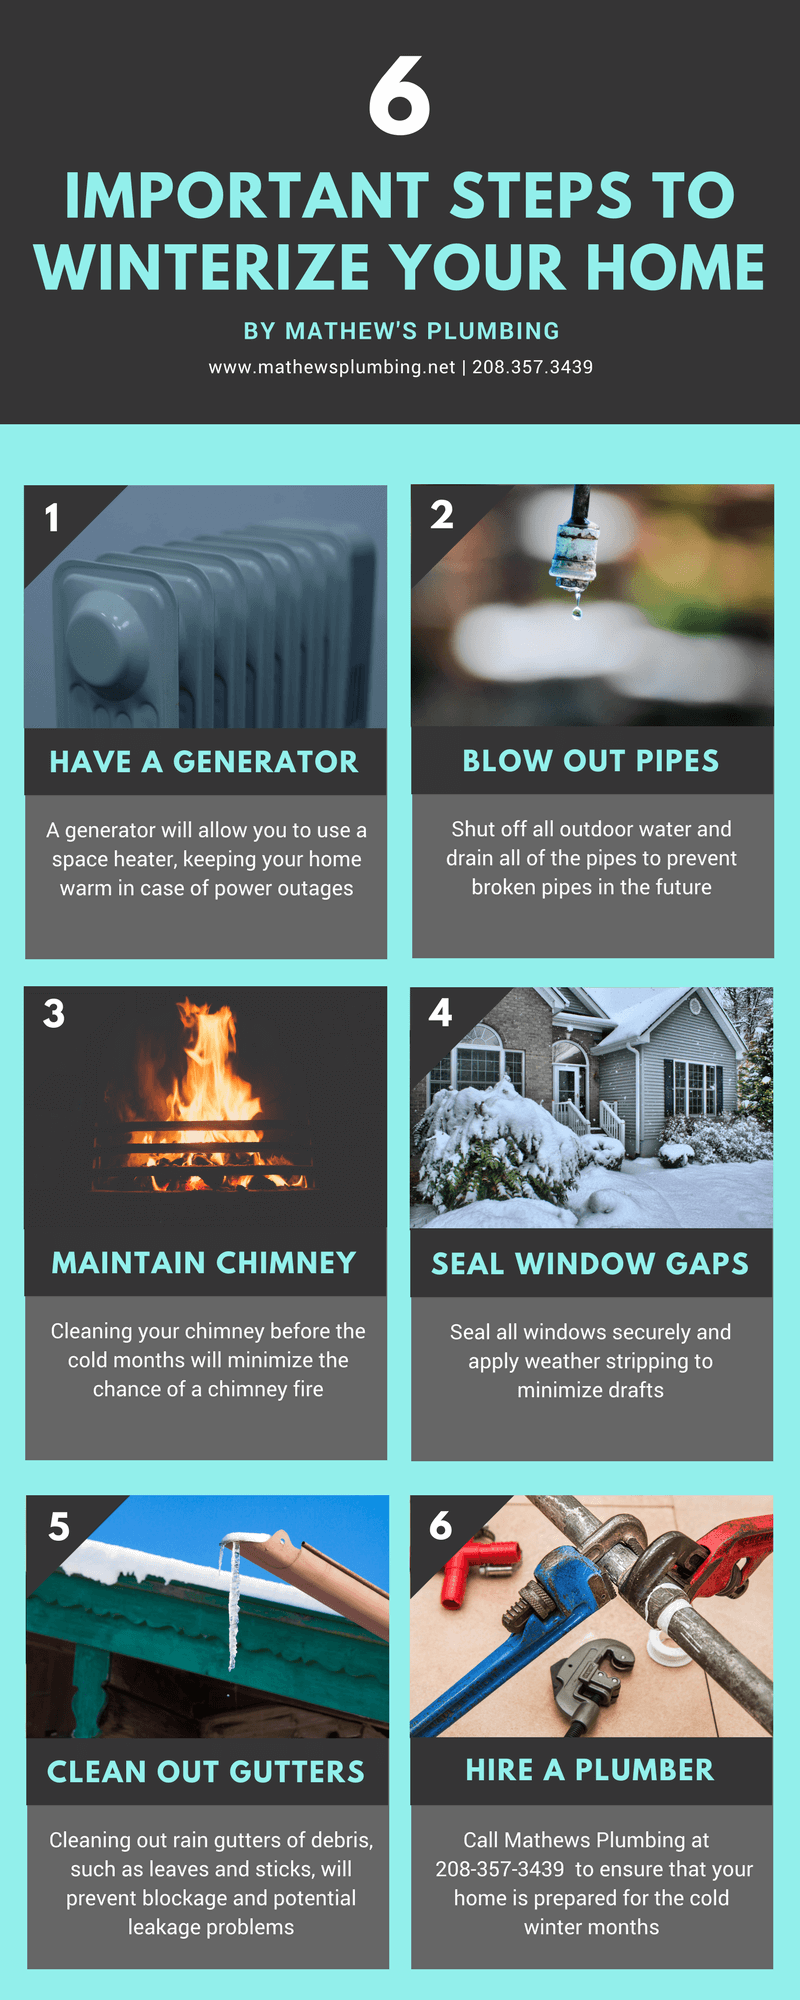 Winterize Your Home With These 6 Steps from Mathew's Plumbing shelley idaho